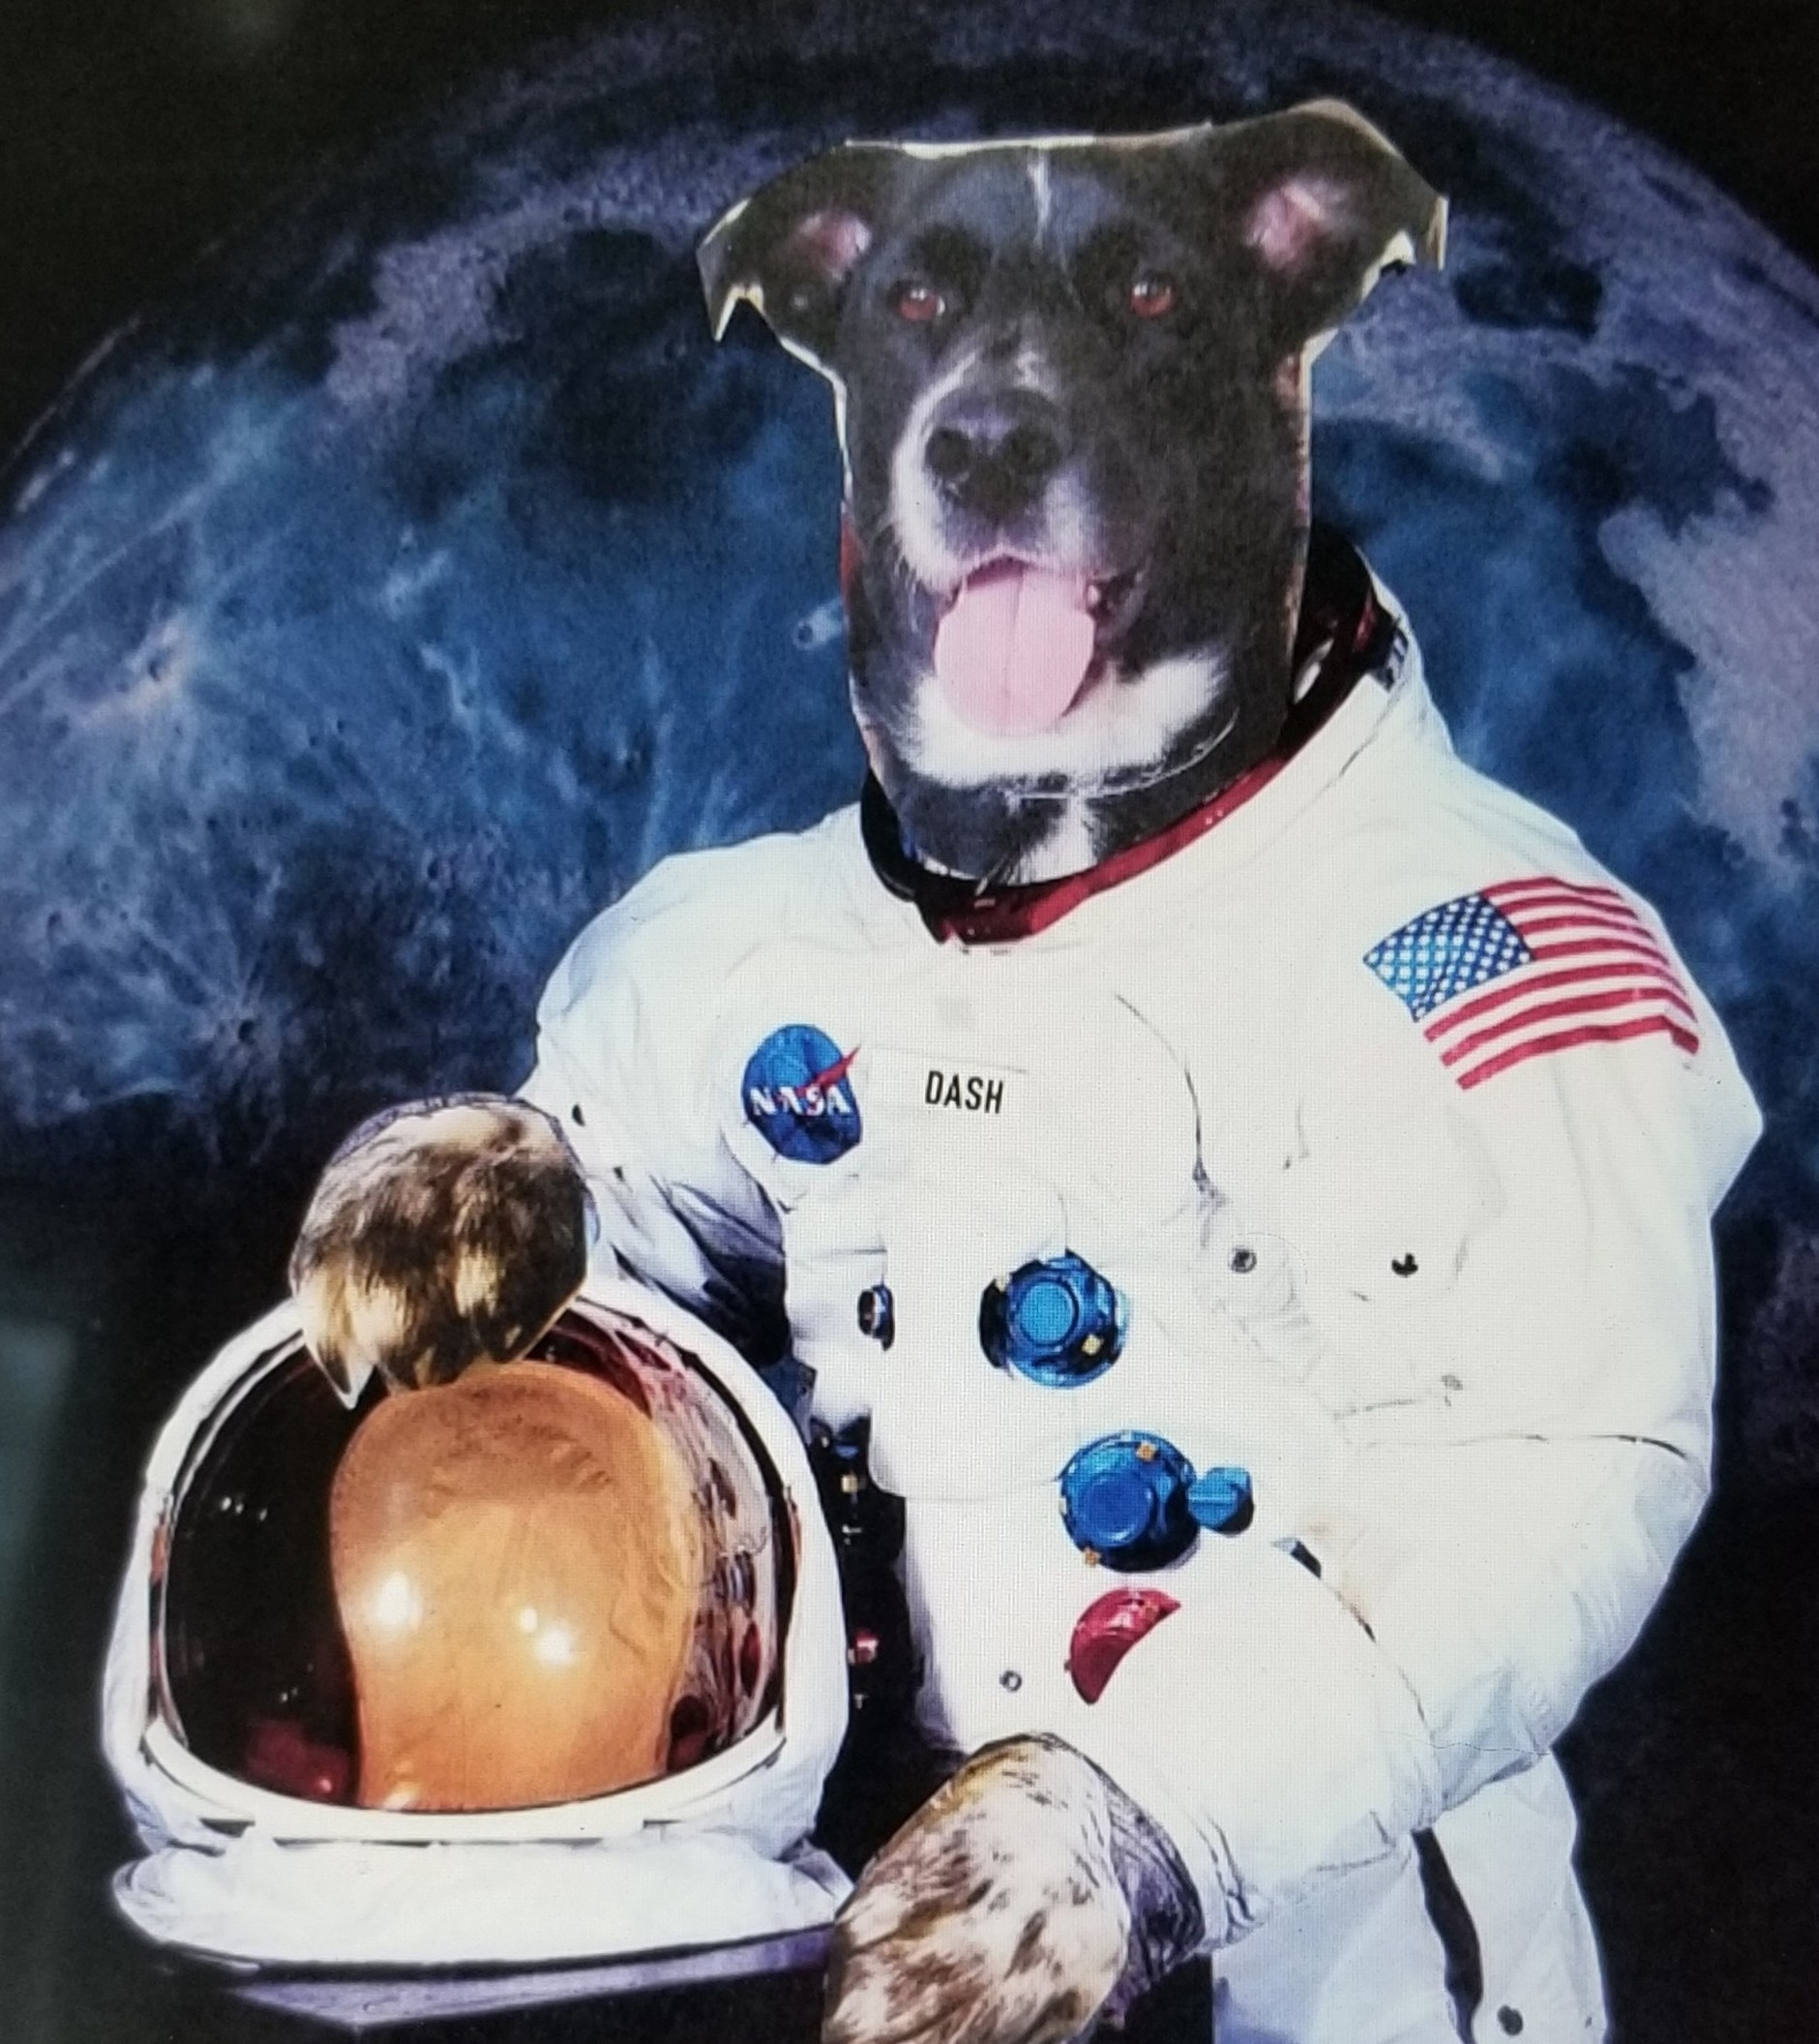 Dashstronaut